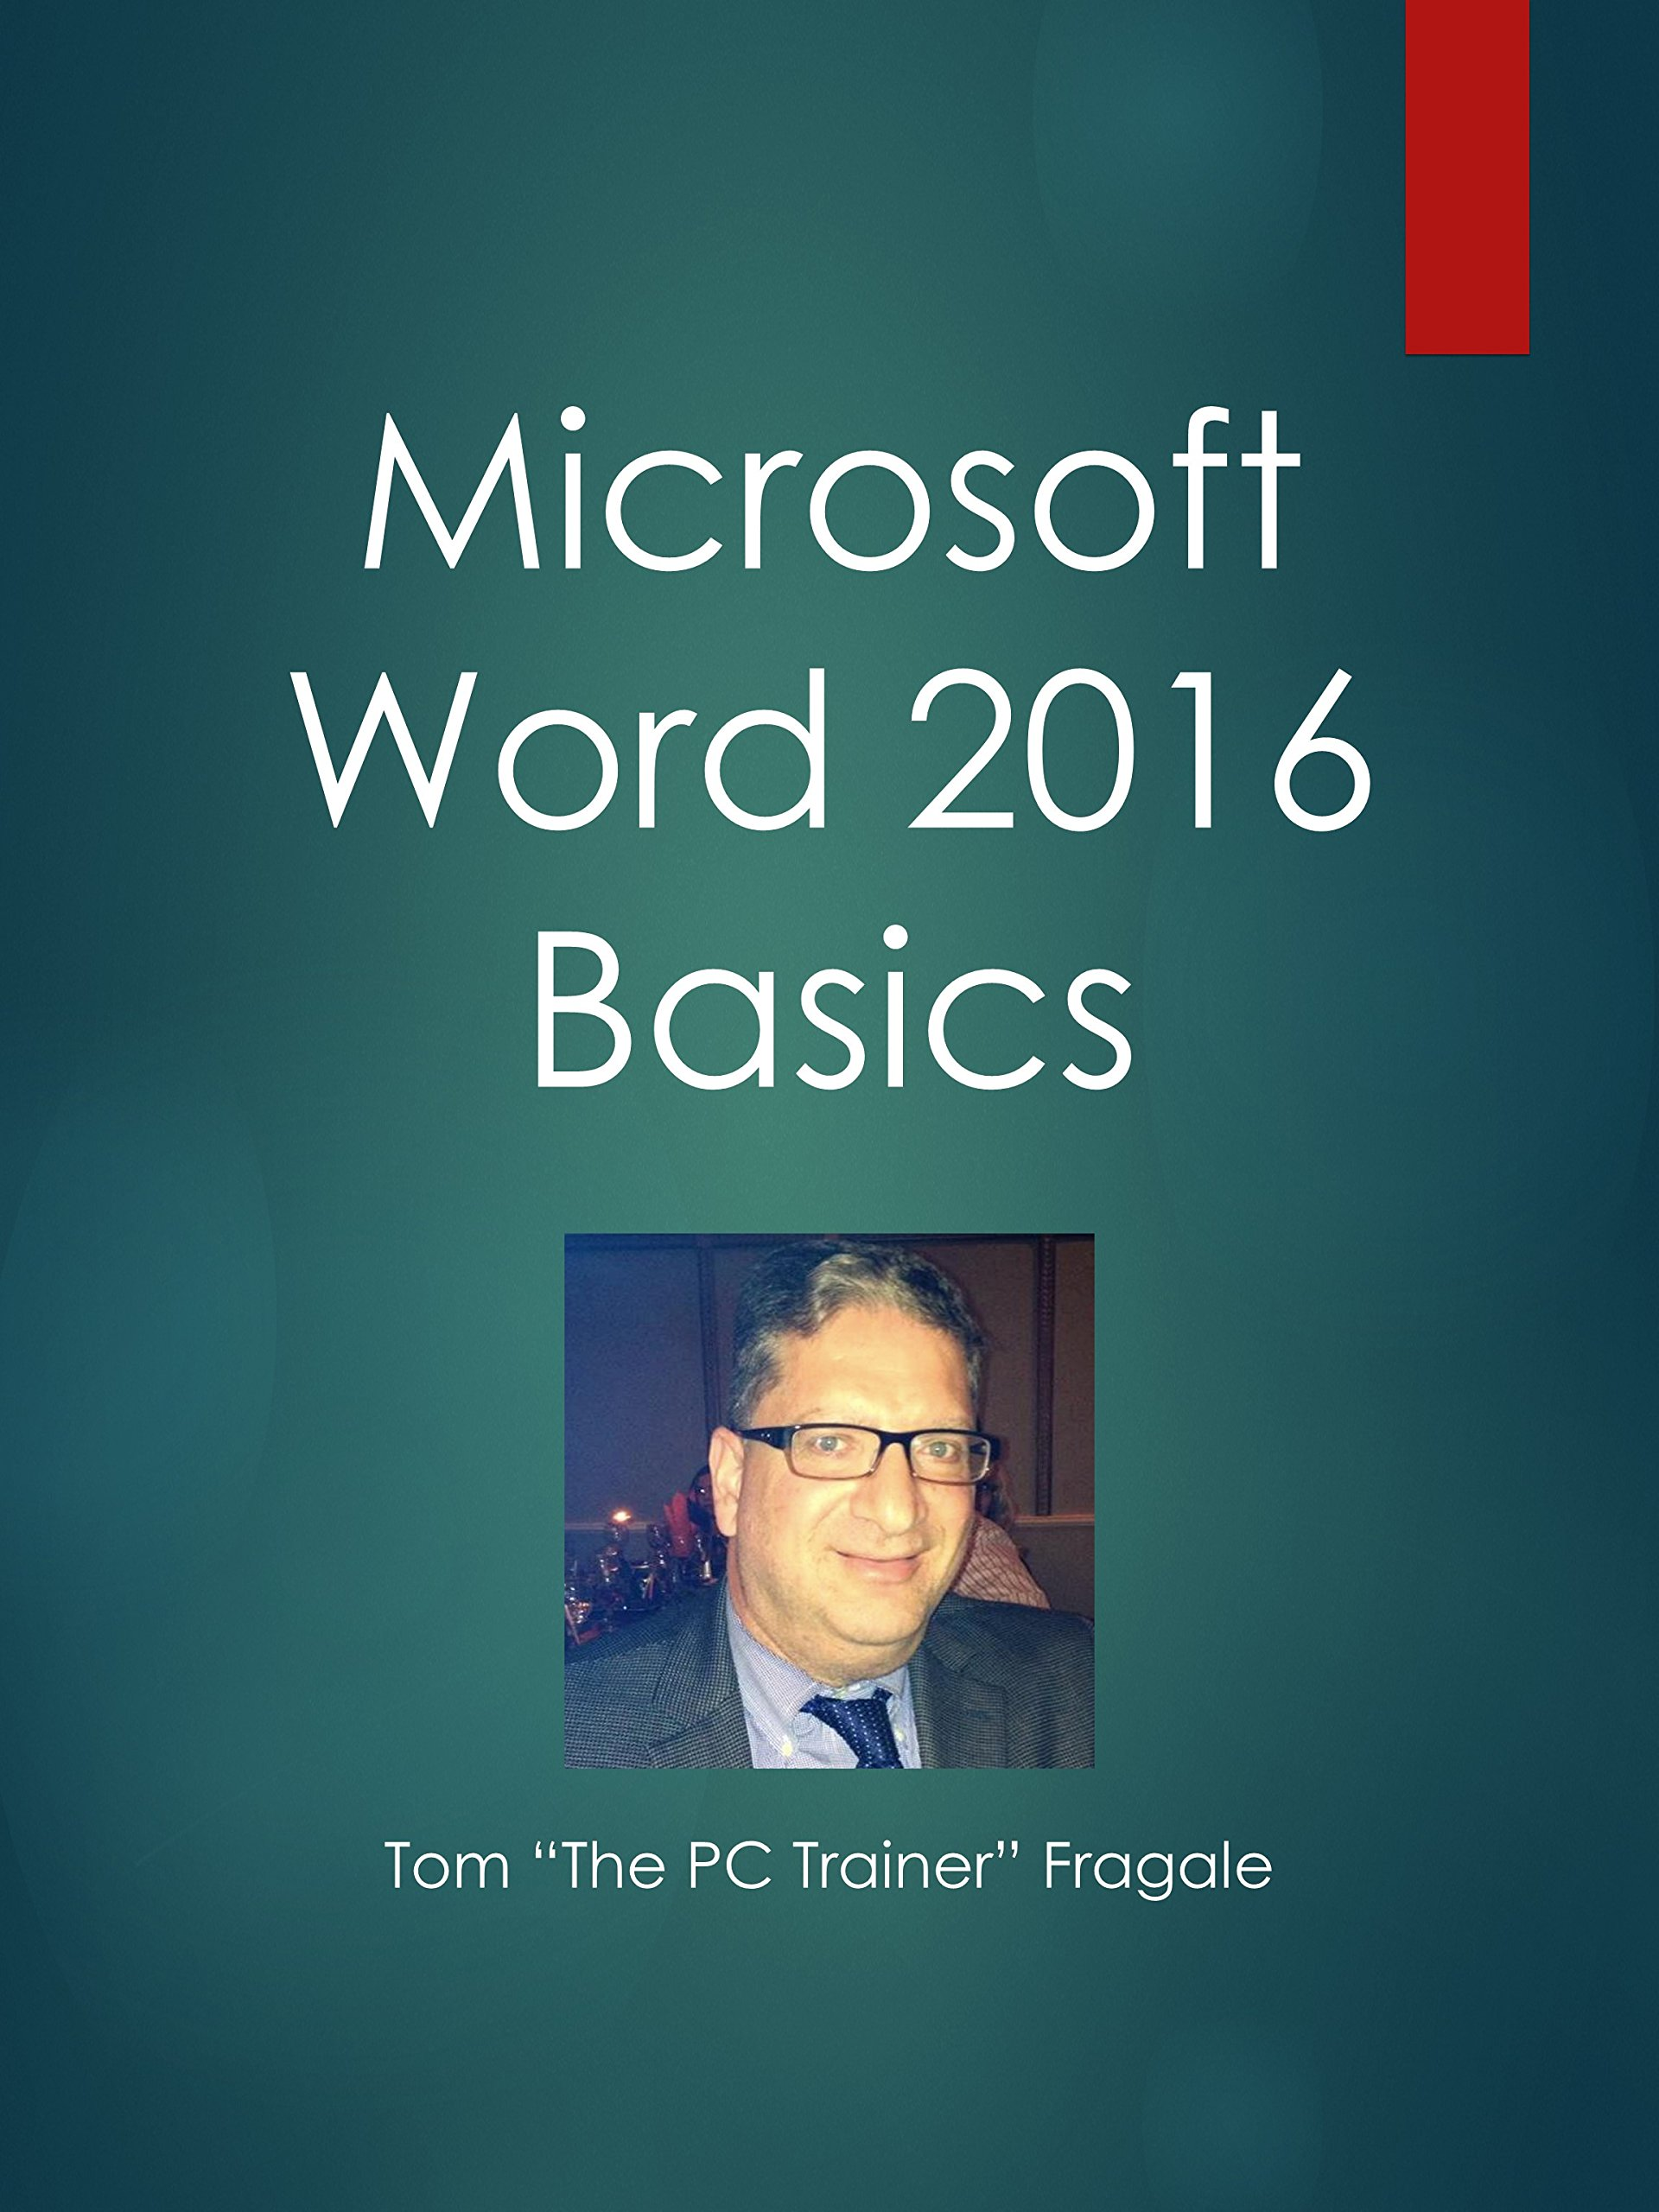 Microsoft Word 2016 Basics